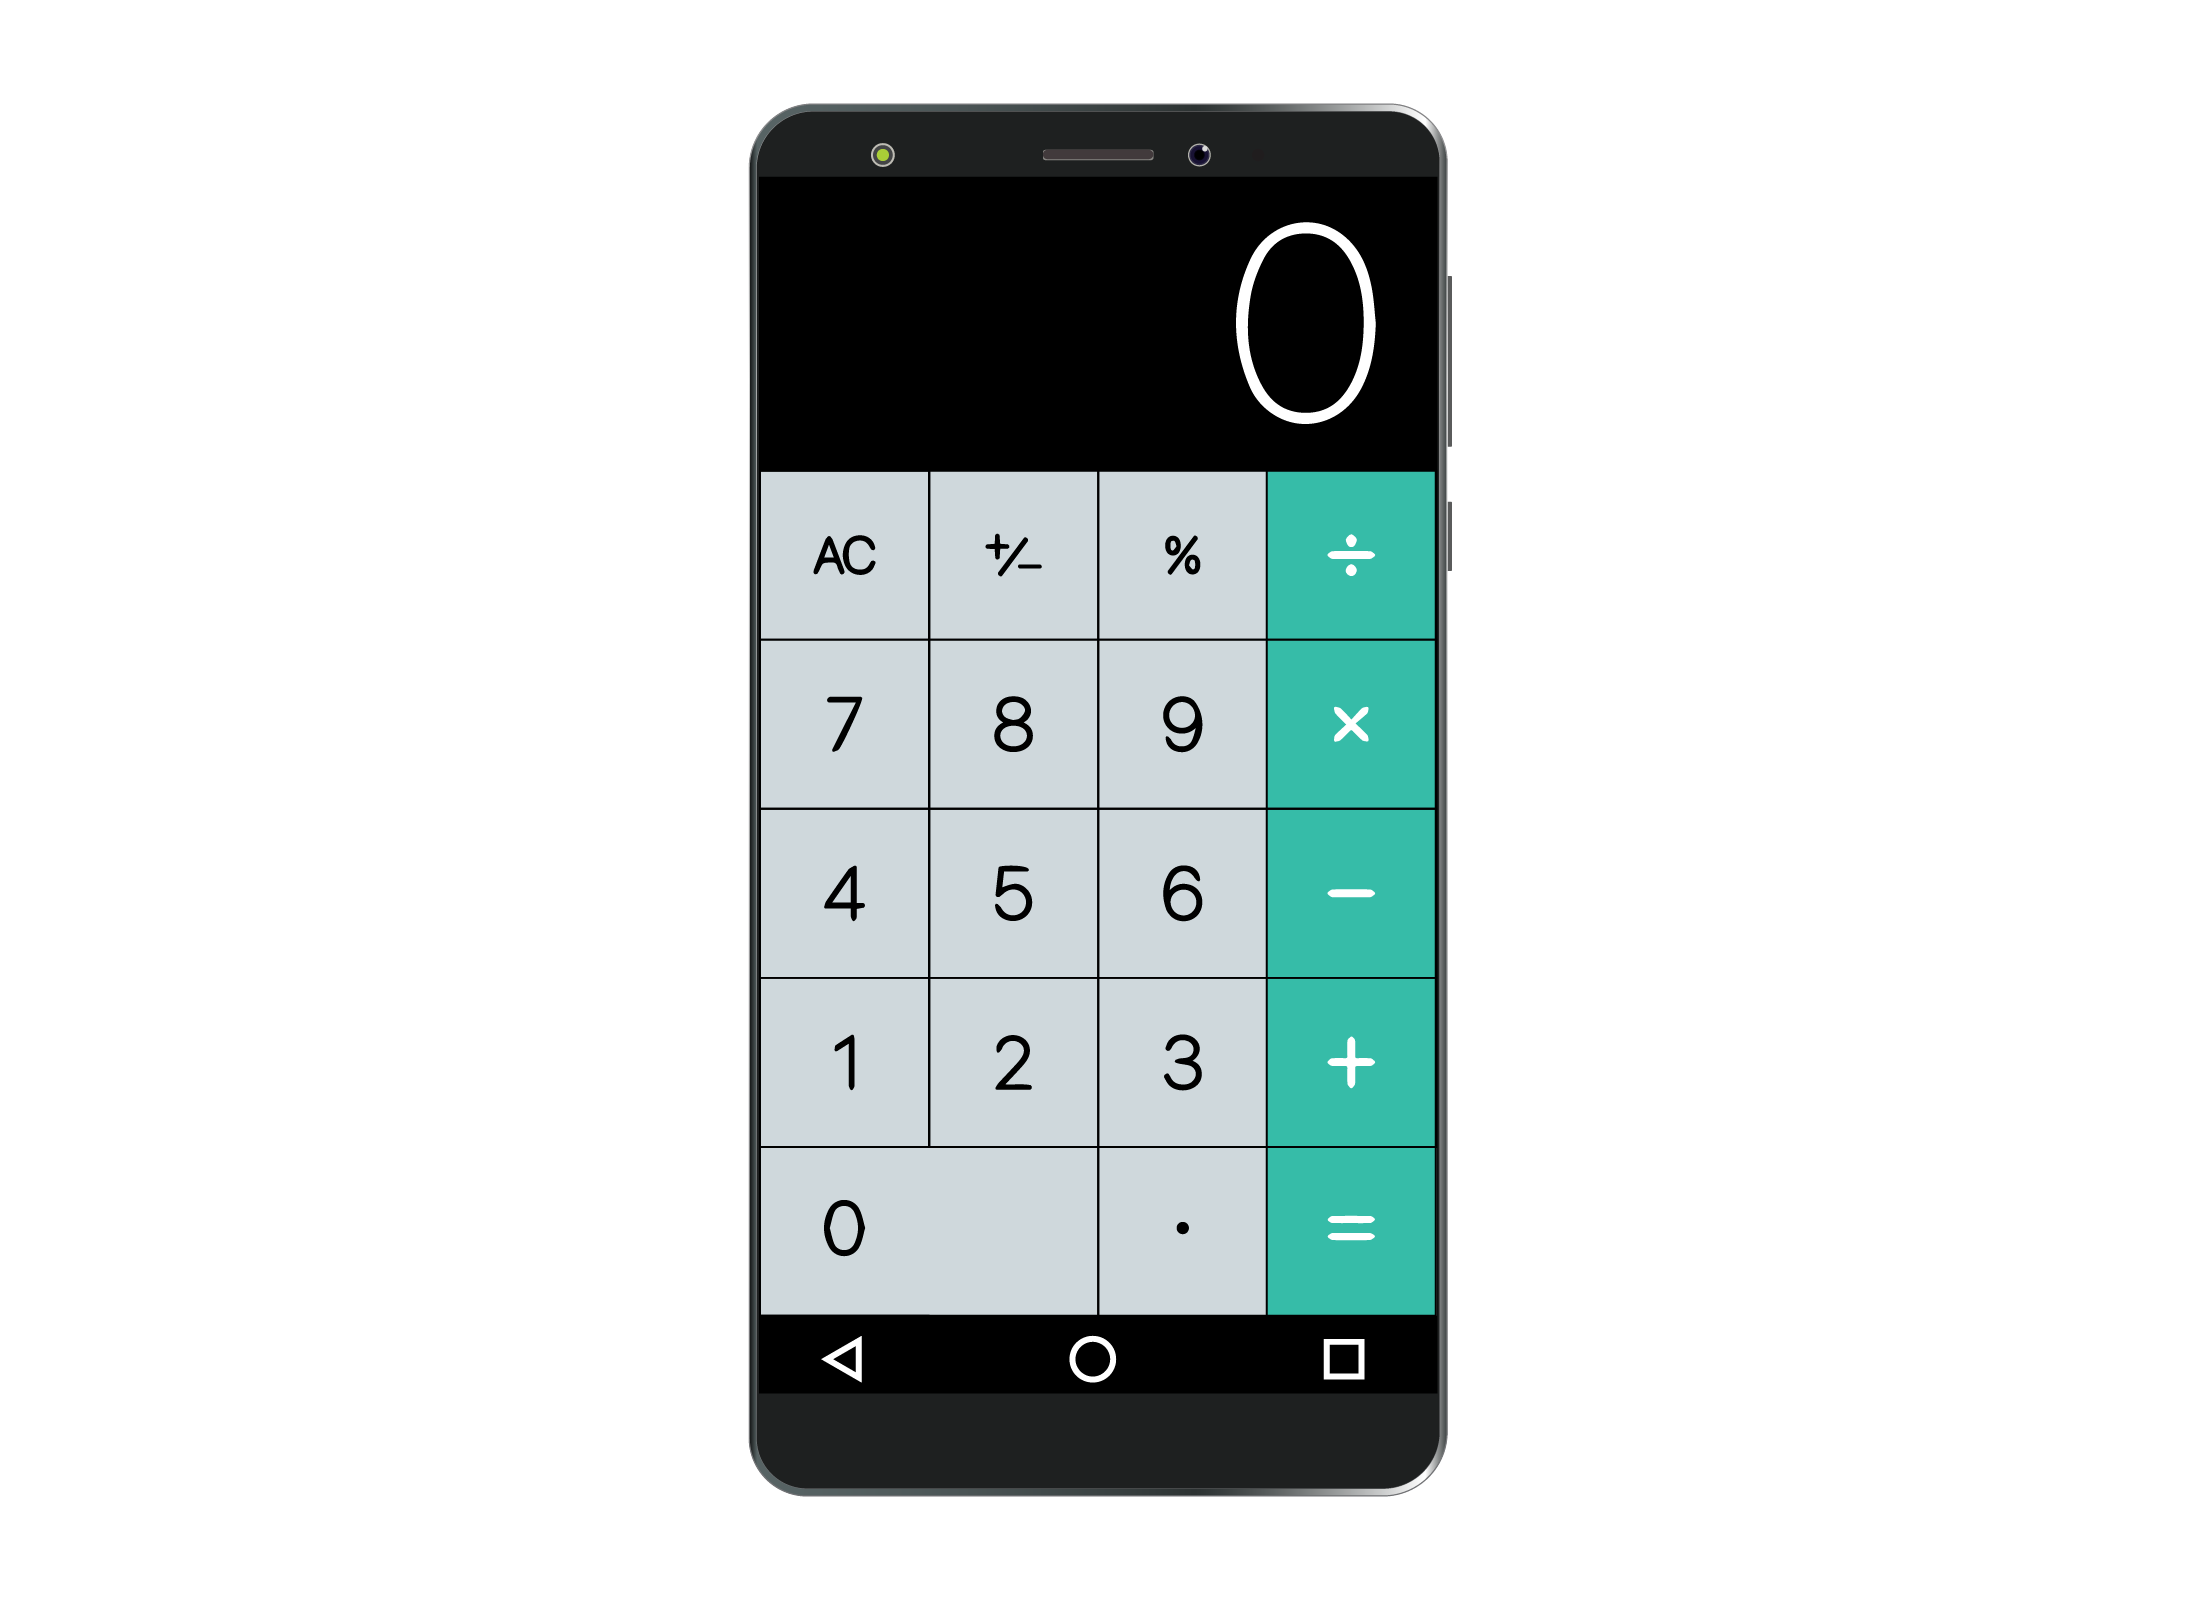 A calculator is an example of an app that doesn't need to be connected to the internet to work